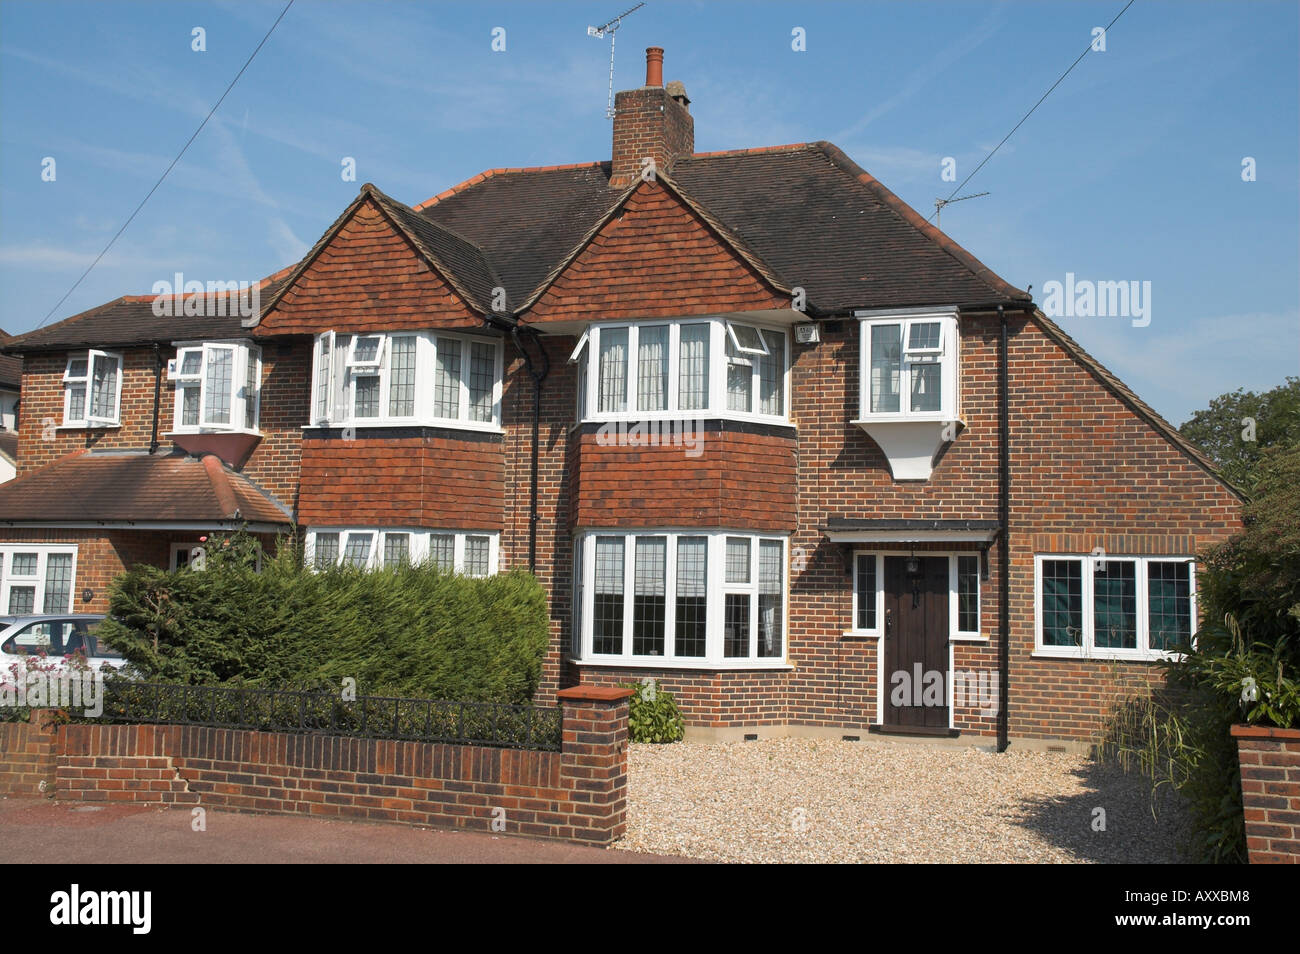 1930s House Building Uk Stock Photos 1930s House Building Uk Stock